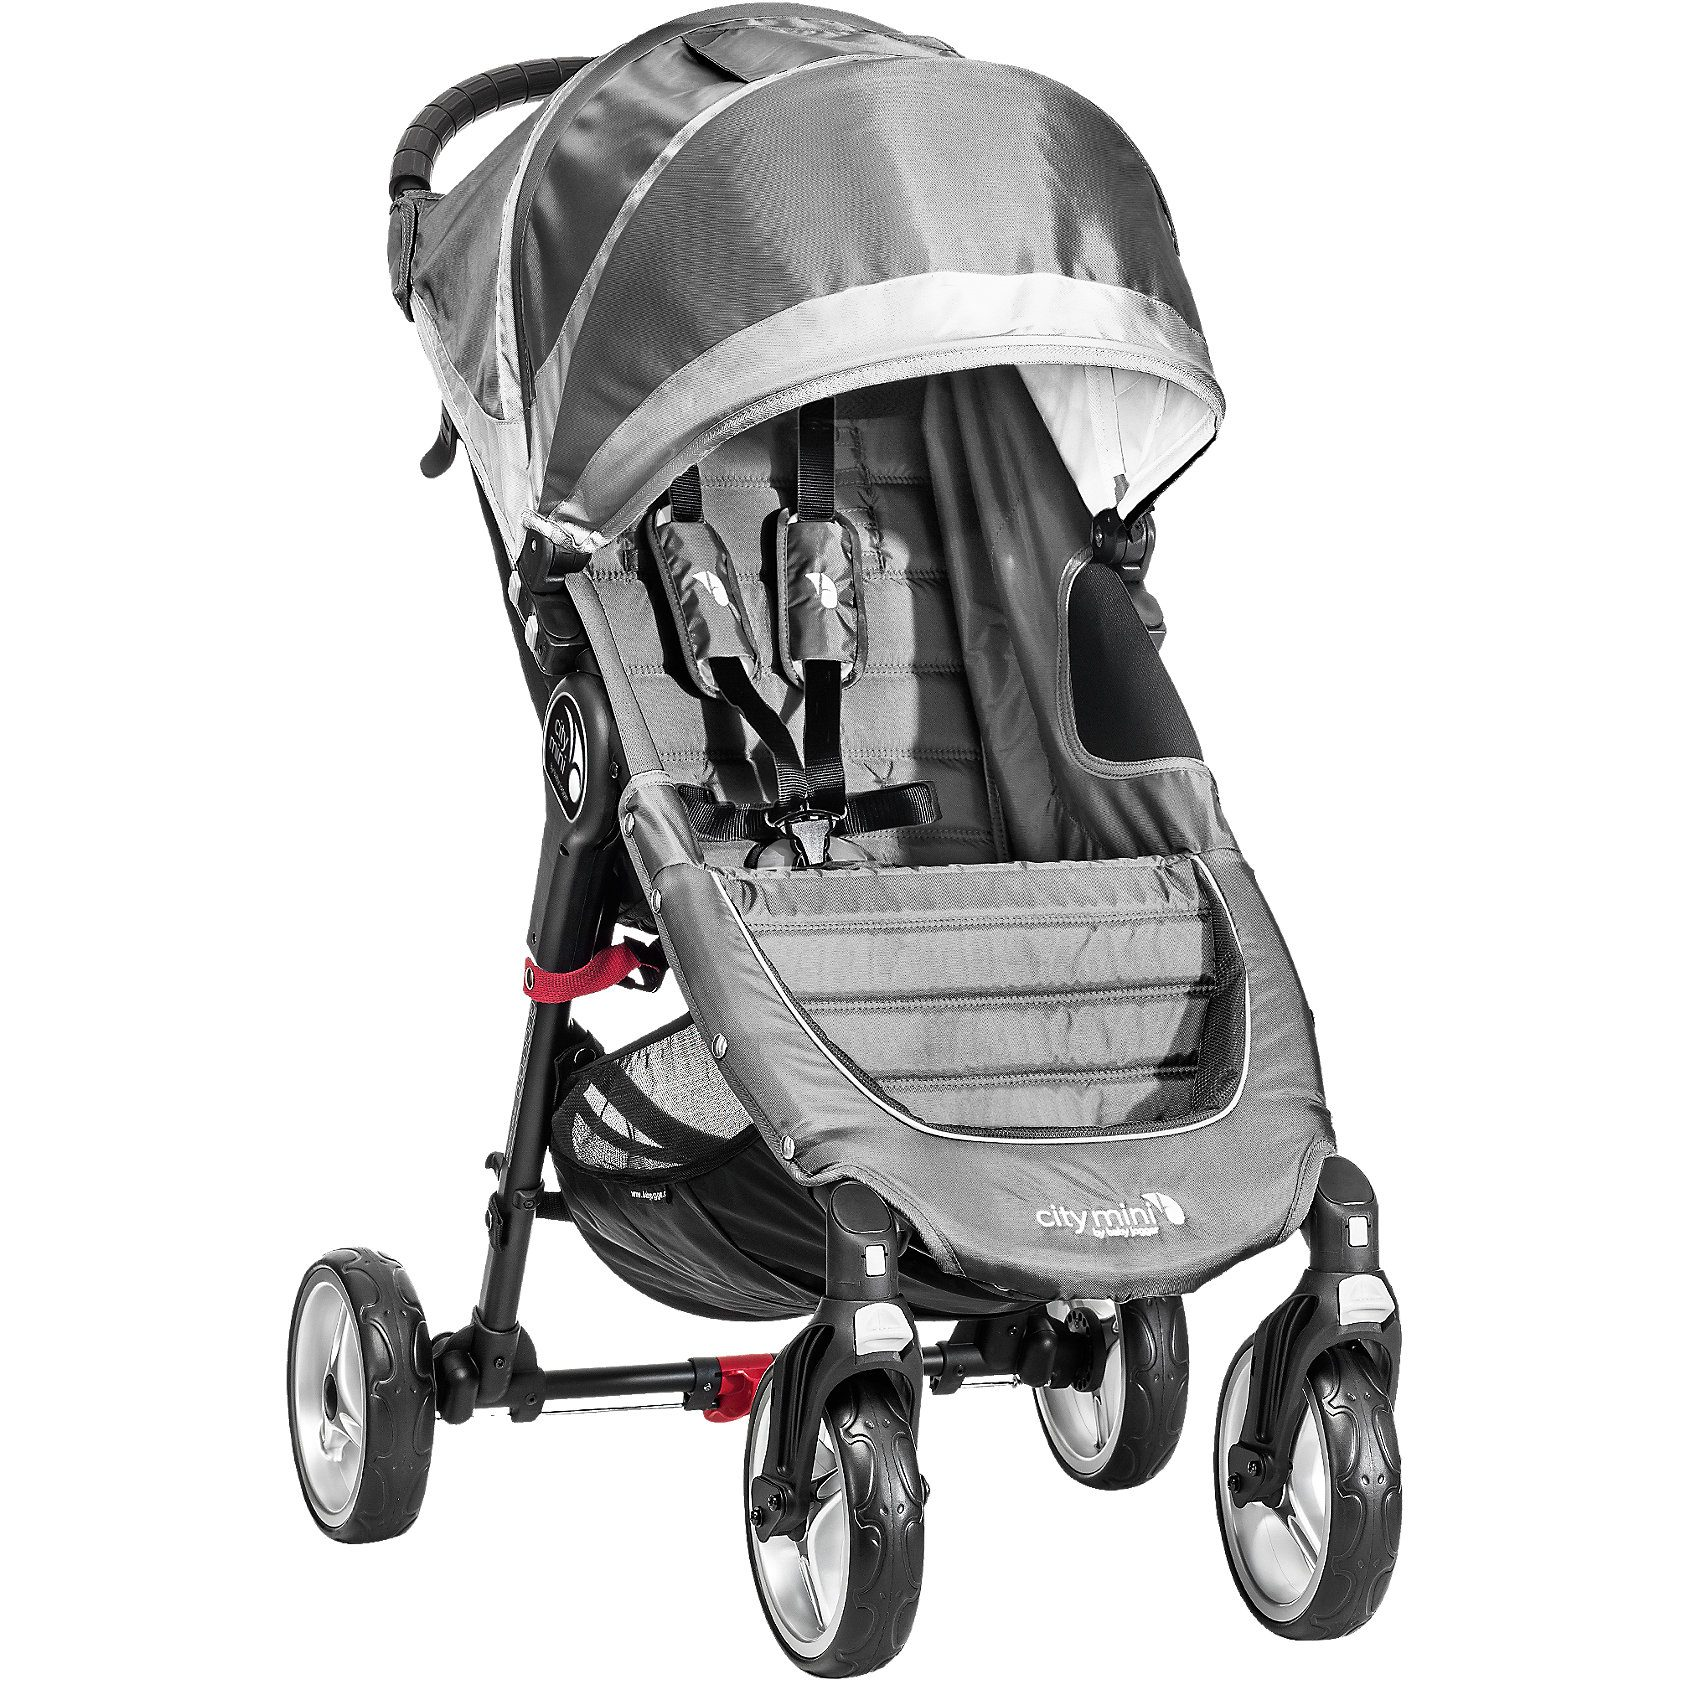 Baby Jogger Sportwagen City Mini 4-Rad, steel/ gray, 2016